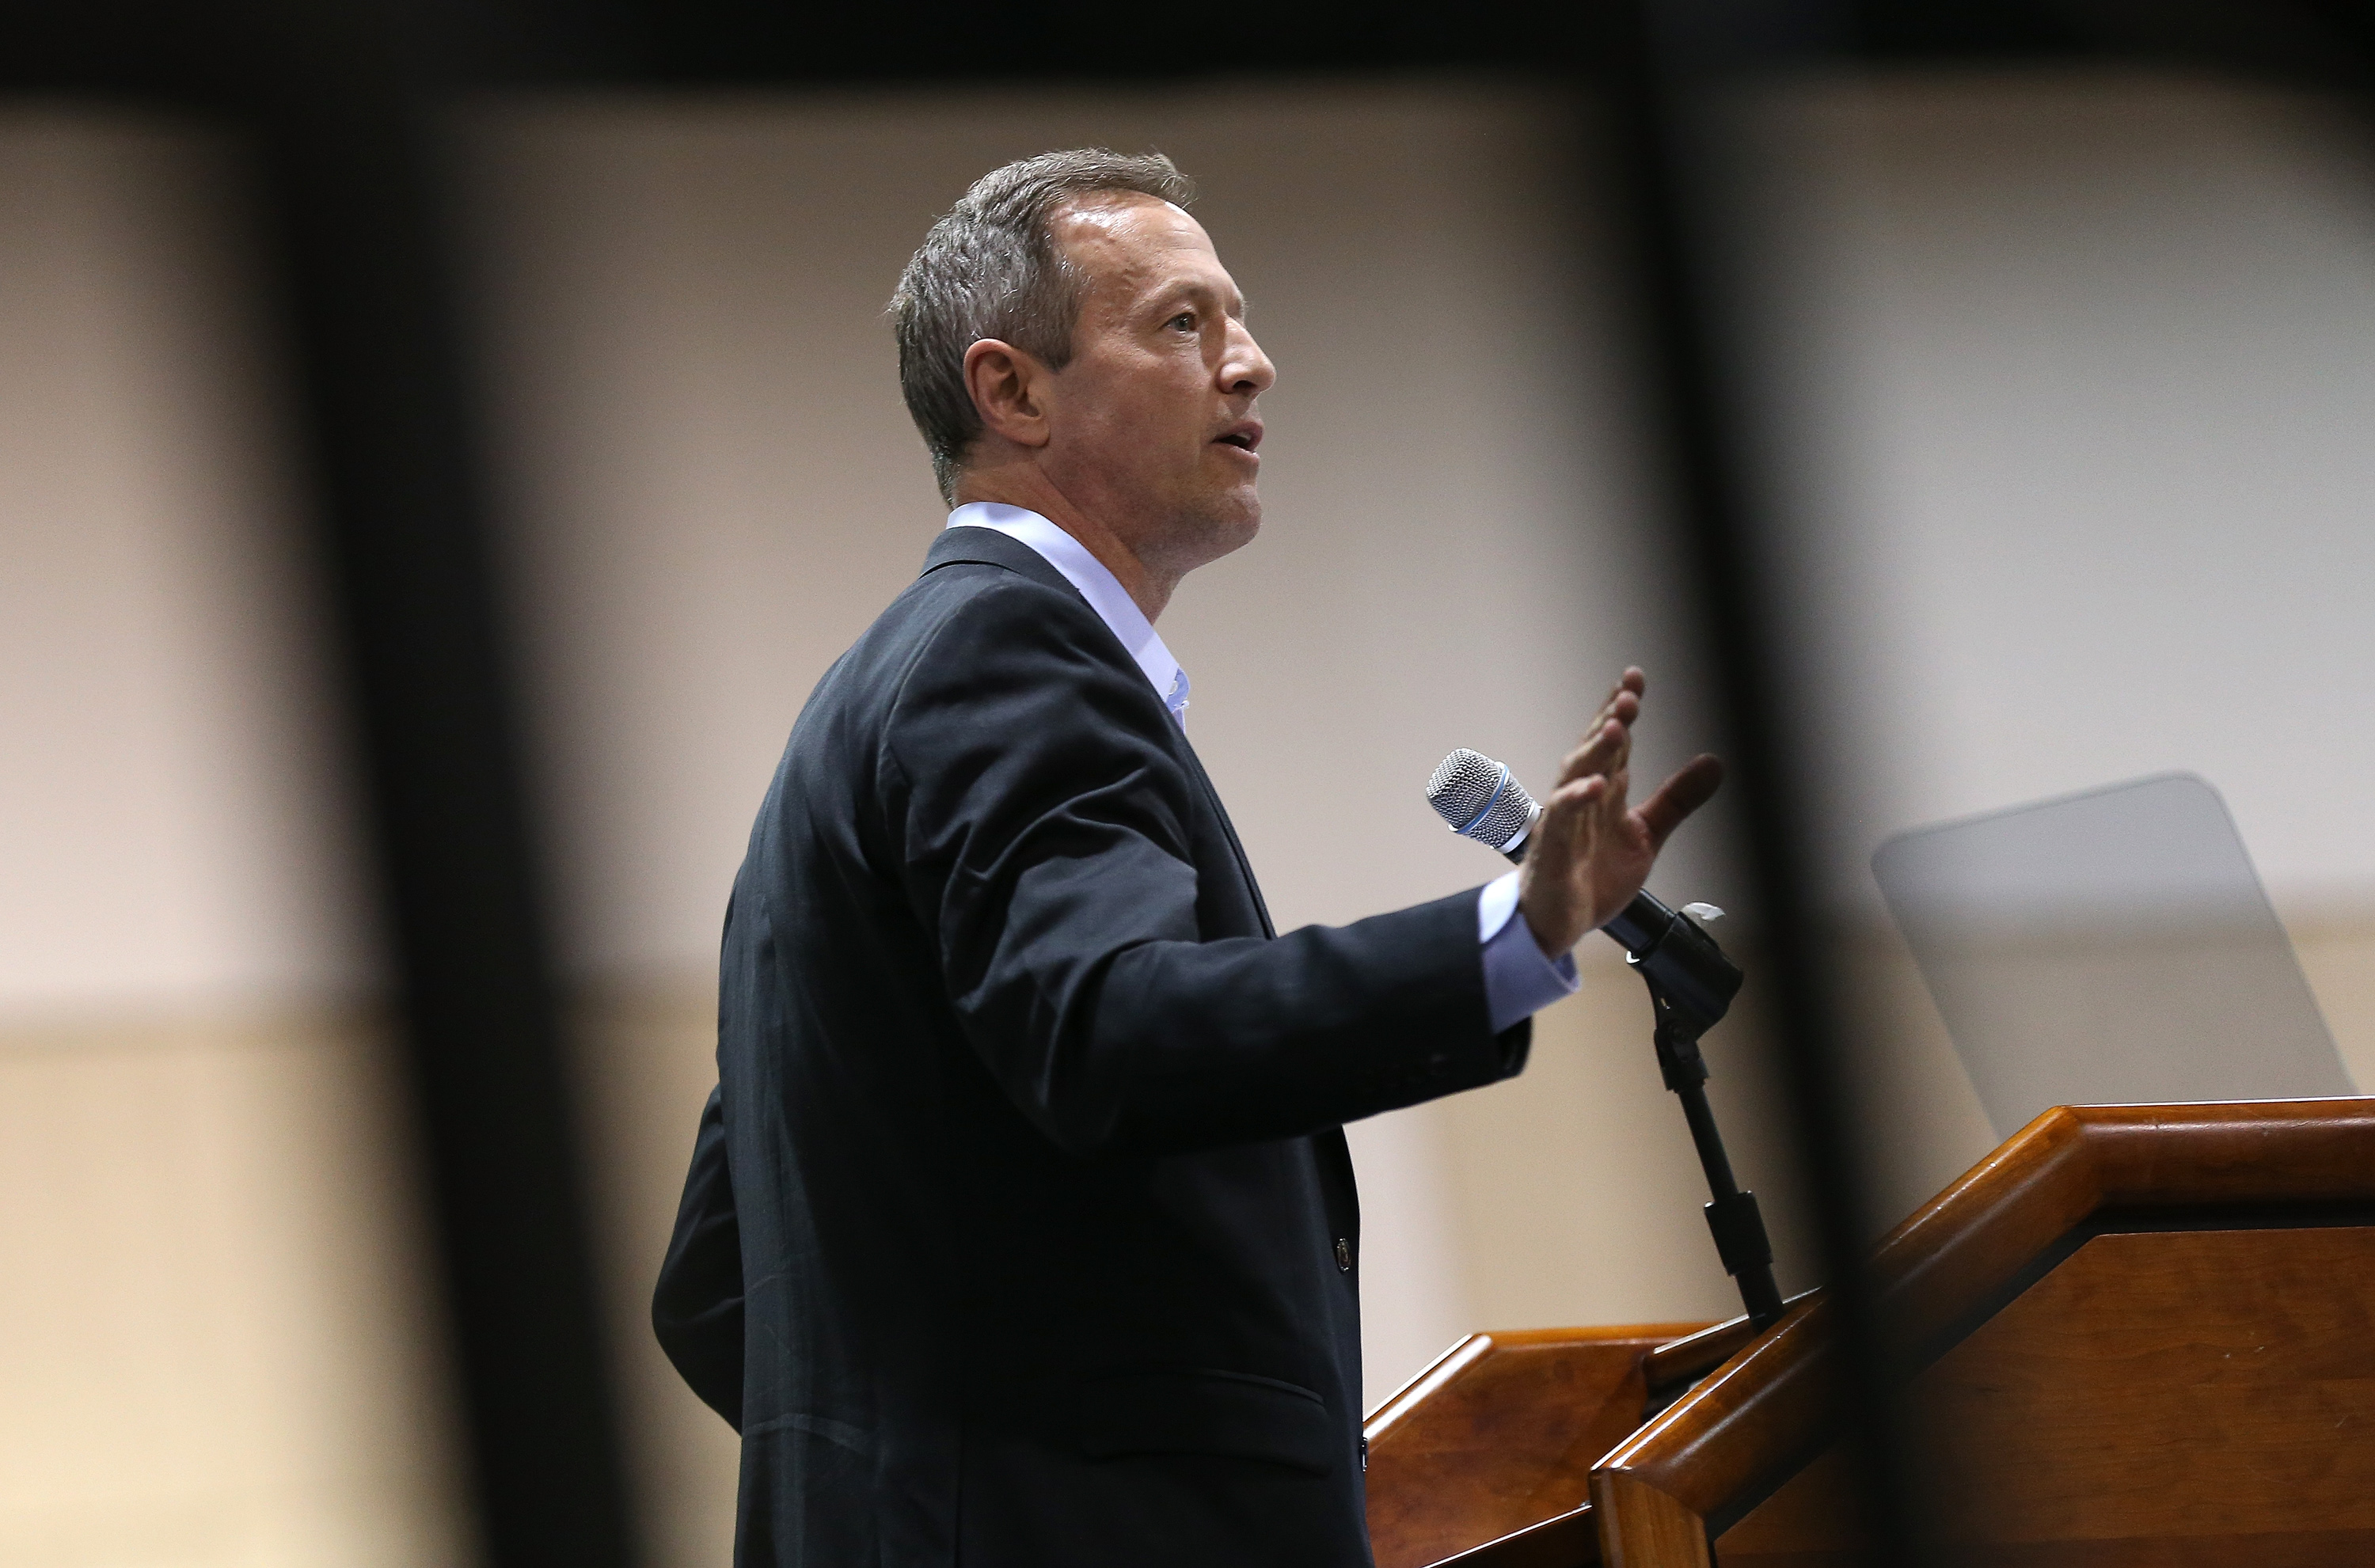 Potential Democratic presidential candidate and former Maryland Gov. Martin O'Malley  delivers remarks at the South Carolinna Democratic Party state convention April 25, 2015 in Columbia, South Carolina.